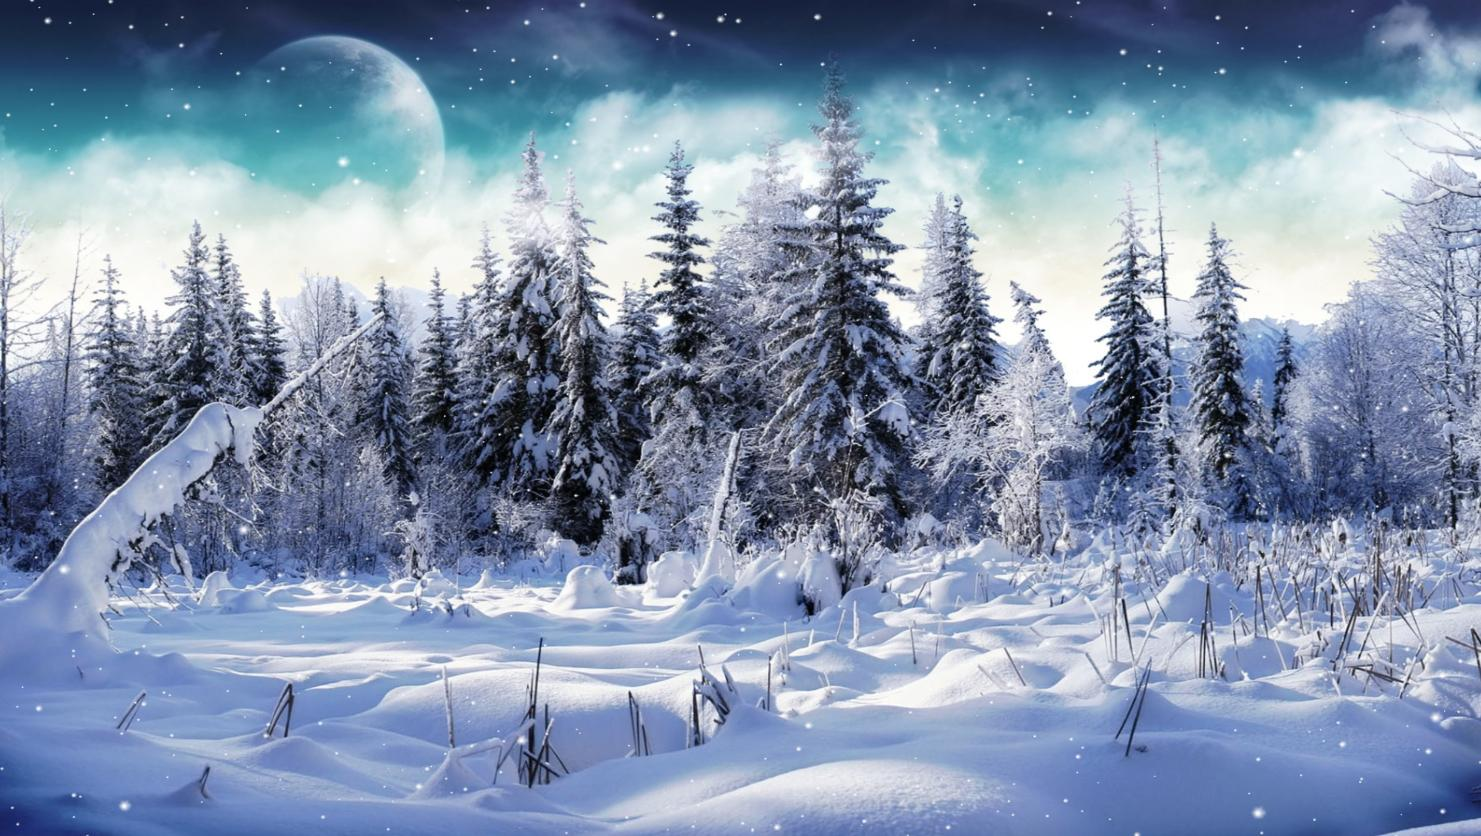 Cold Winter Screensaver   Animated Wallpaper[h33t][Screensavers 1481x836